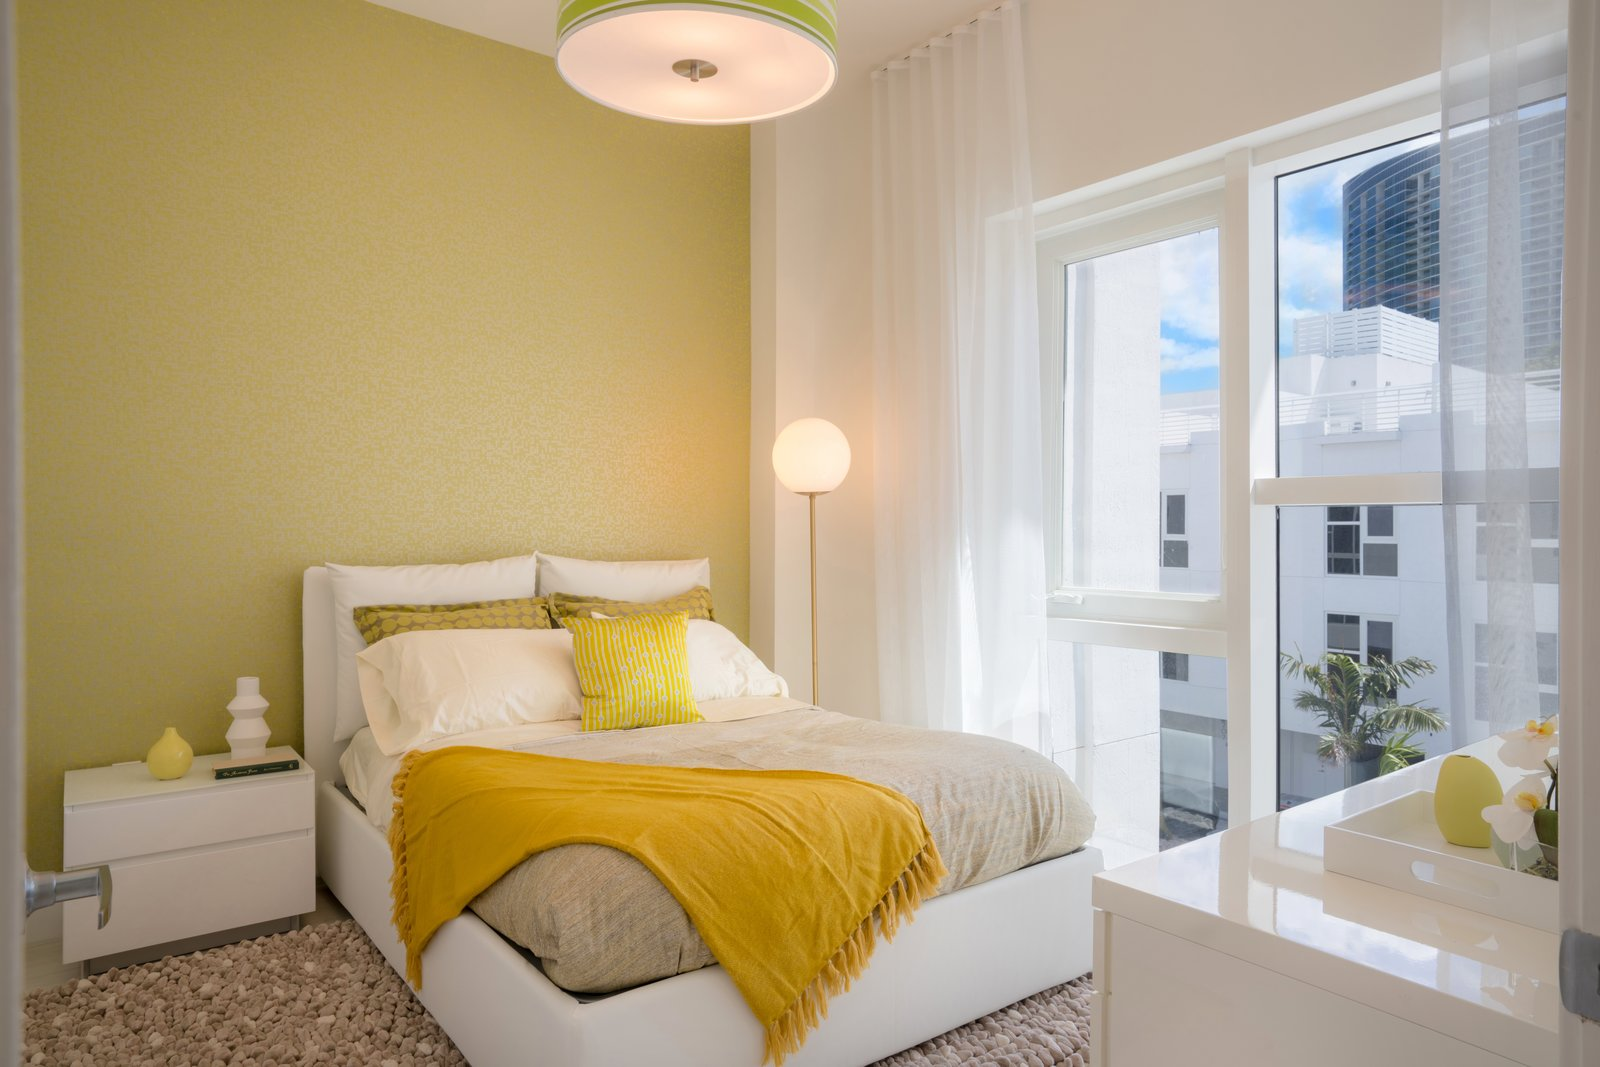 First Bedroom featuring a vibrant color palette